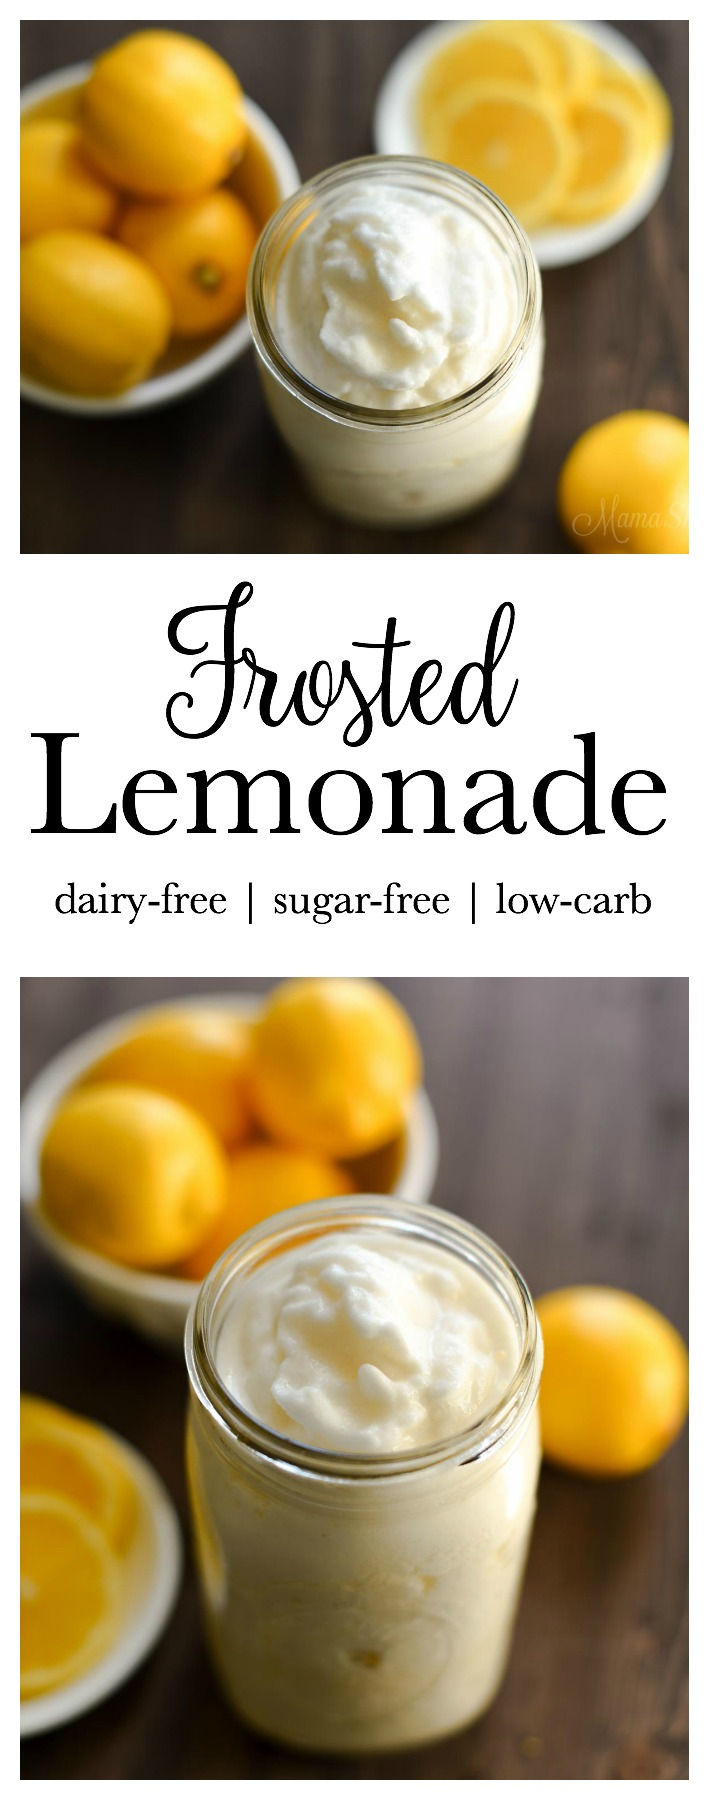 Frosted Lemonade | dairy-free, sugar-free, low-carb. Healthy and delicious mock Chick-fil-a Frosted Lemonade. Trim Healthy Mamas (FP)